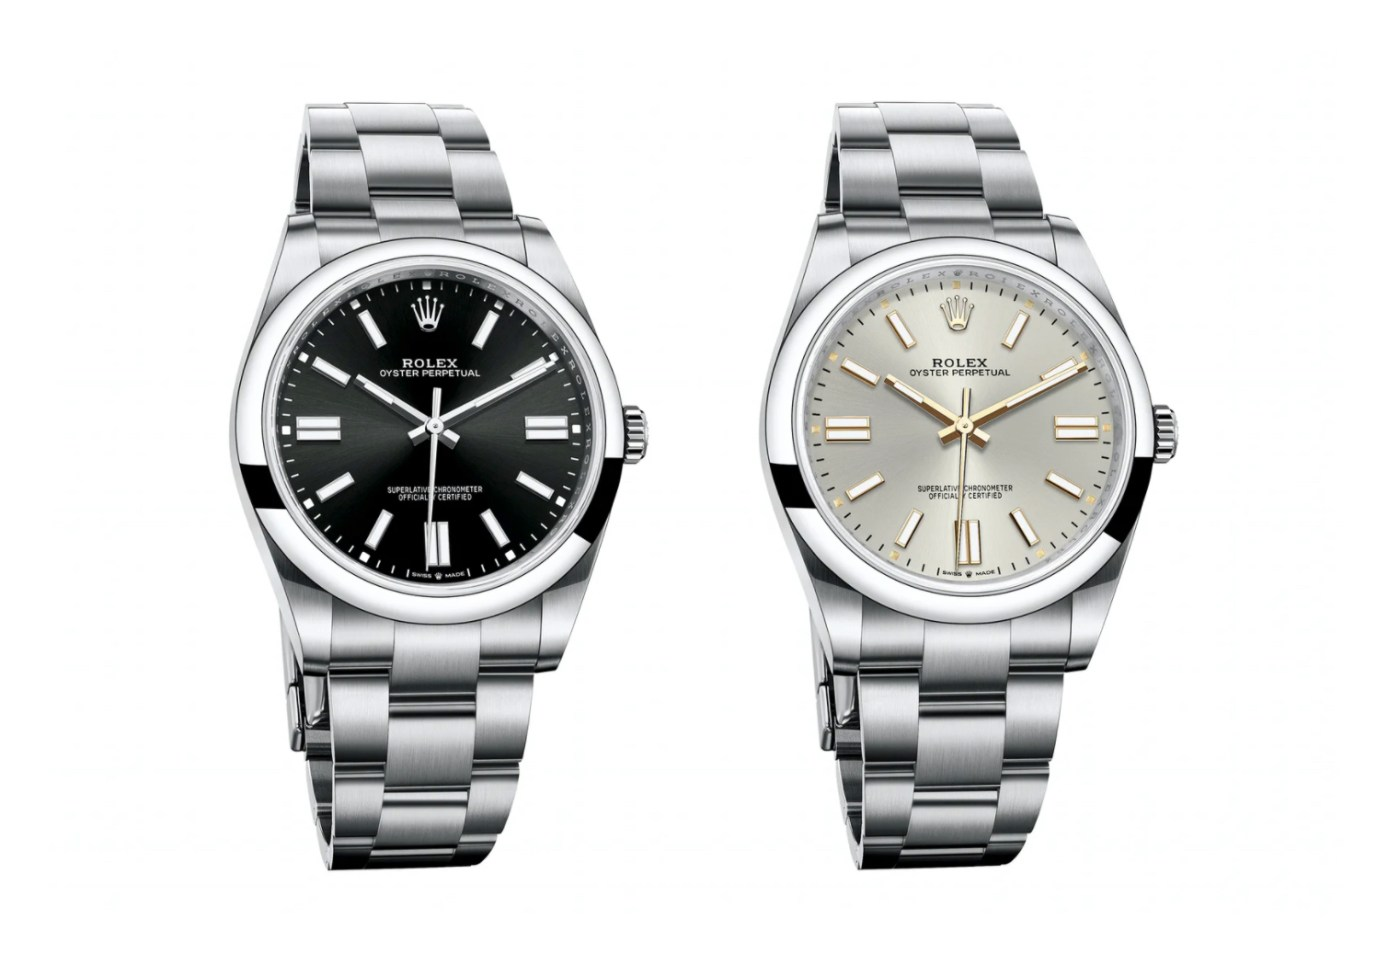 2020 Rolex Oyster Perpetual 41 black and silver side by side